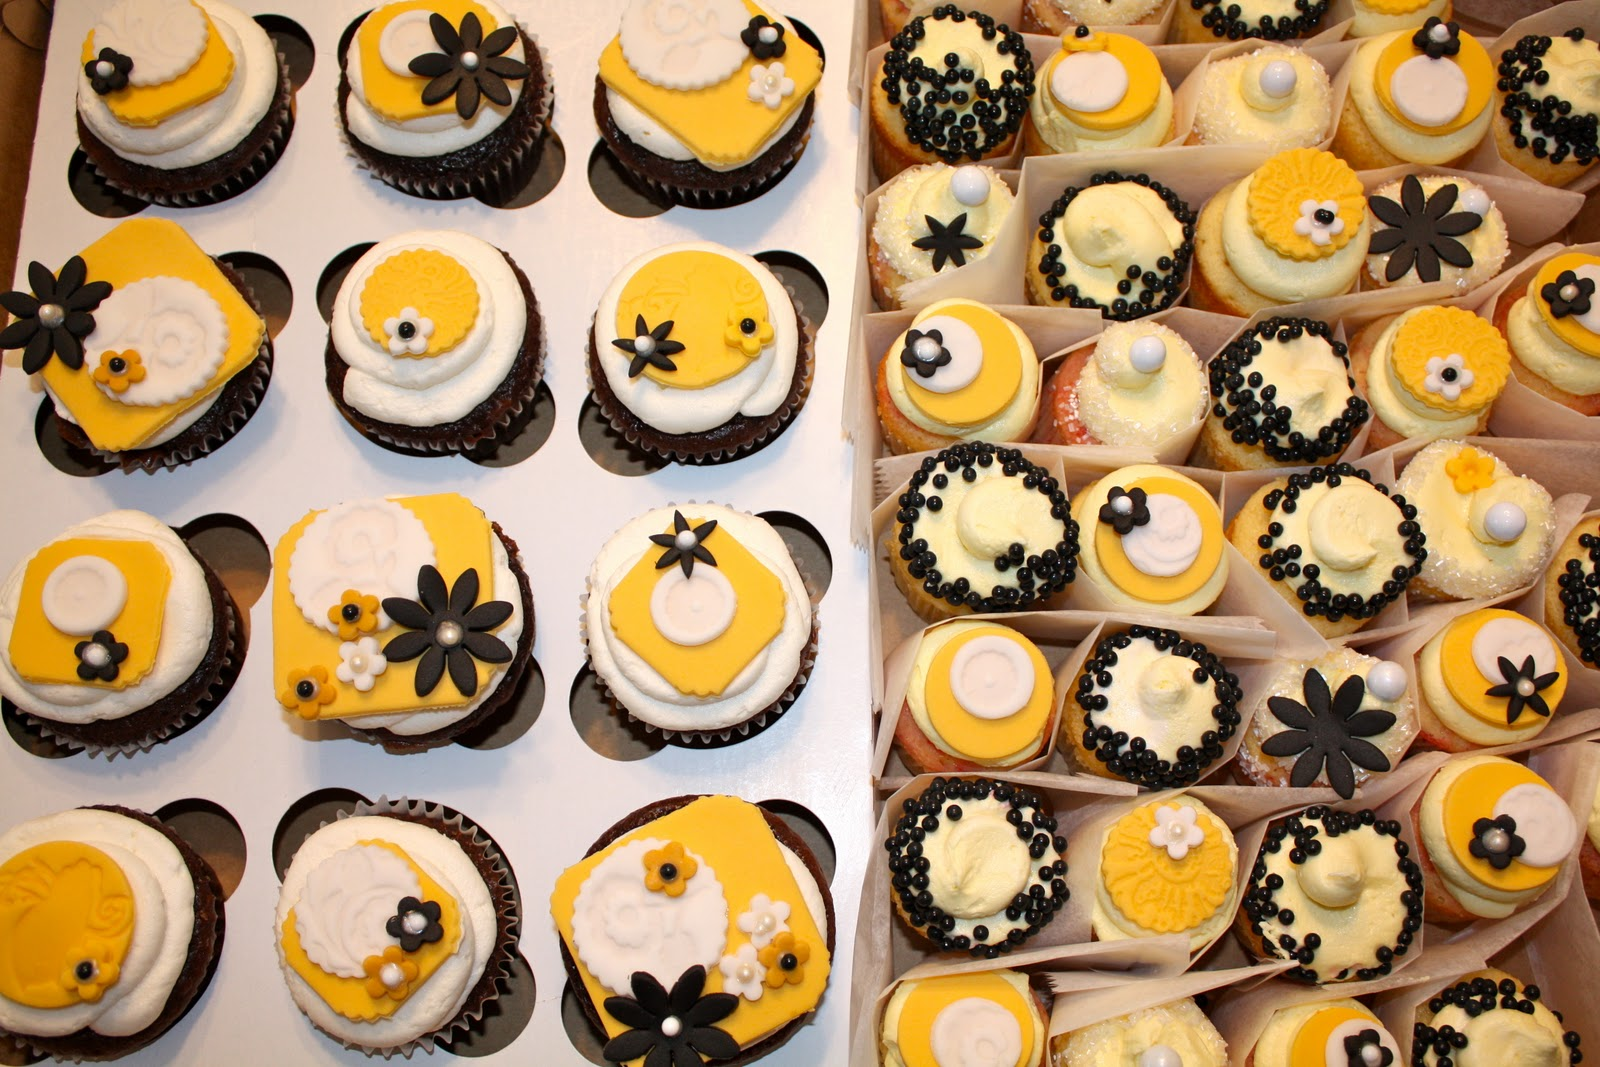 bumble cakes